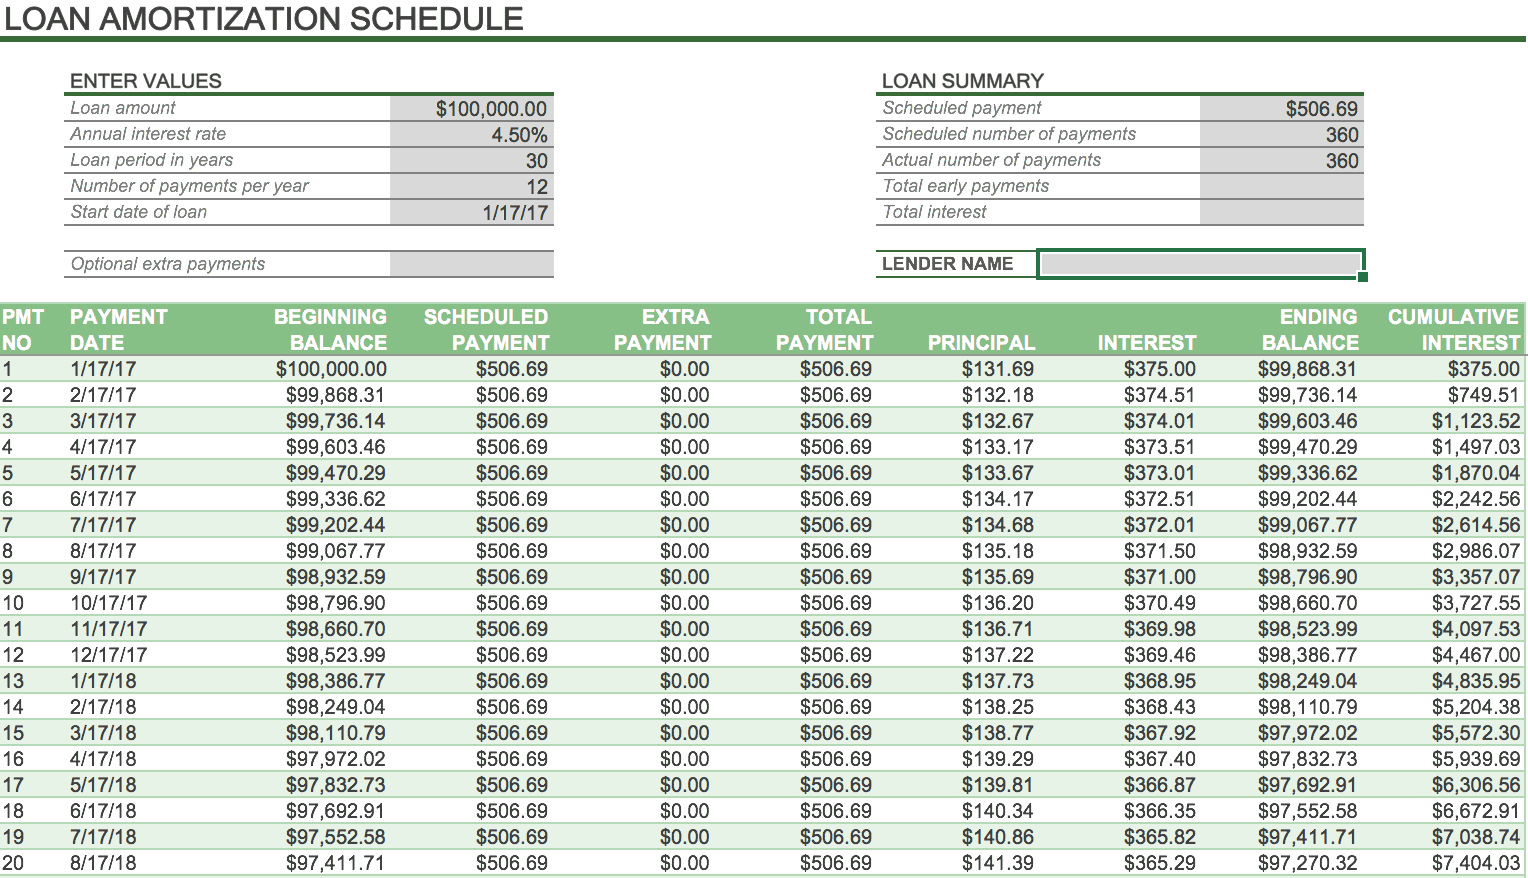 Blank Amortization Schedule Template from www.smartsheet.com